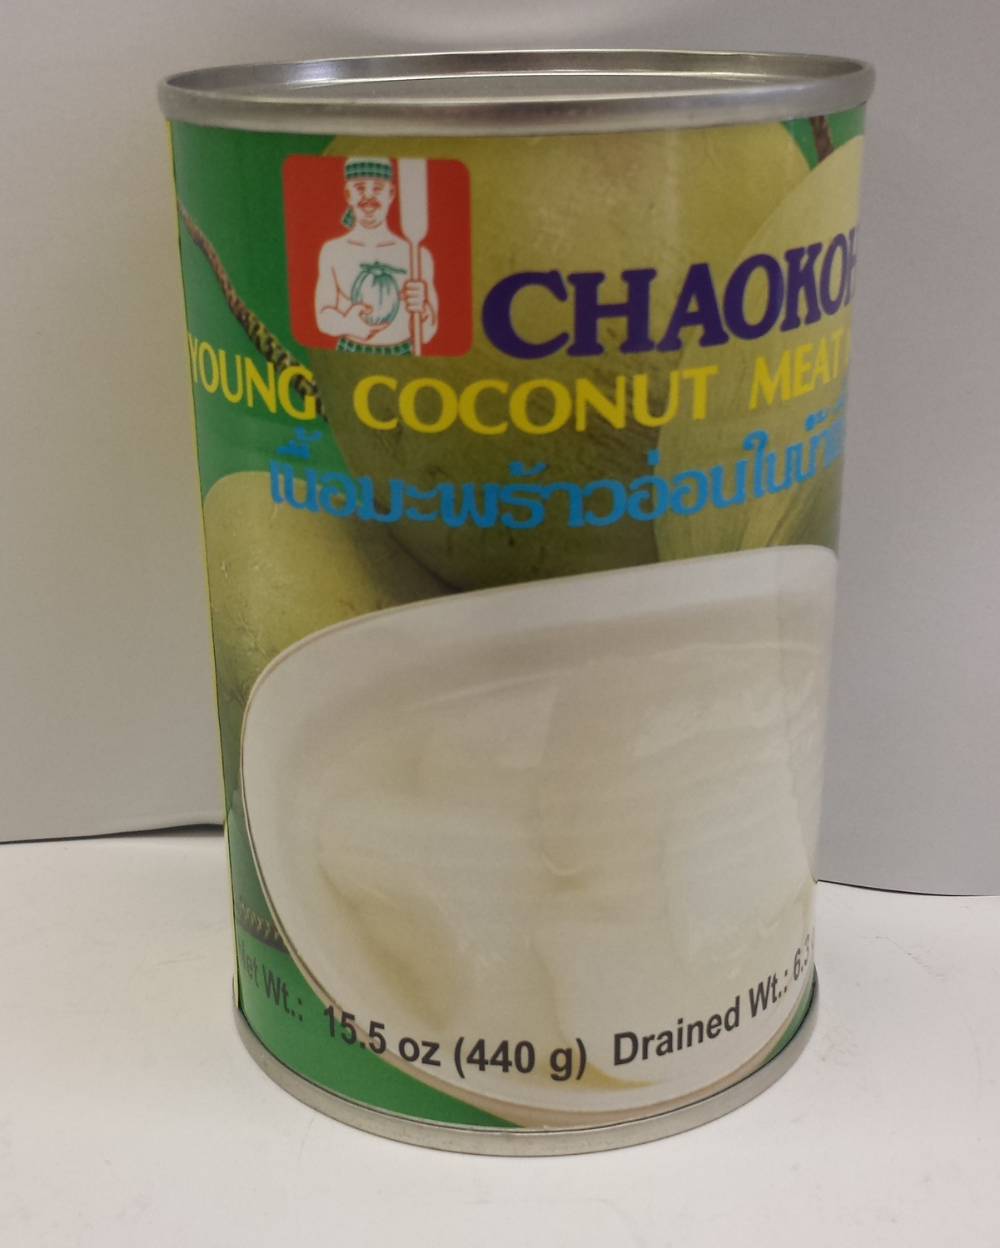 Young Coconut Meat in   Syrup    Chaokoh   DK19099 20x15 oz